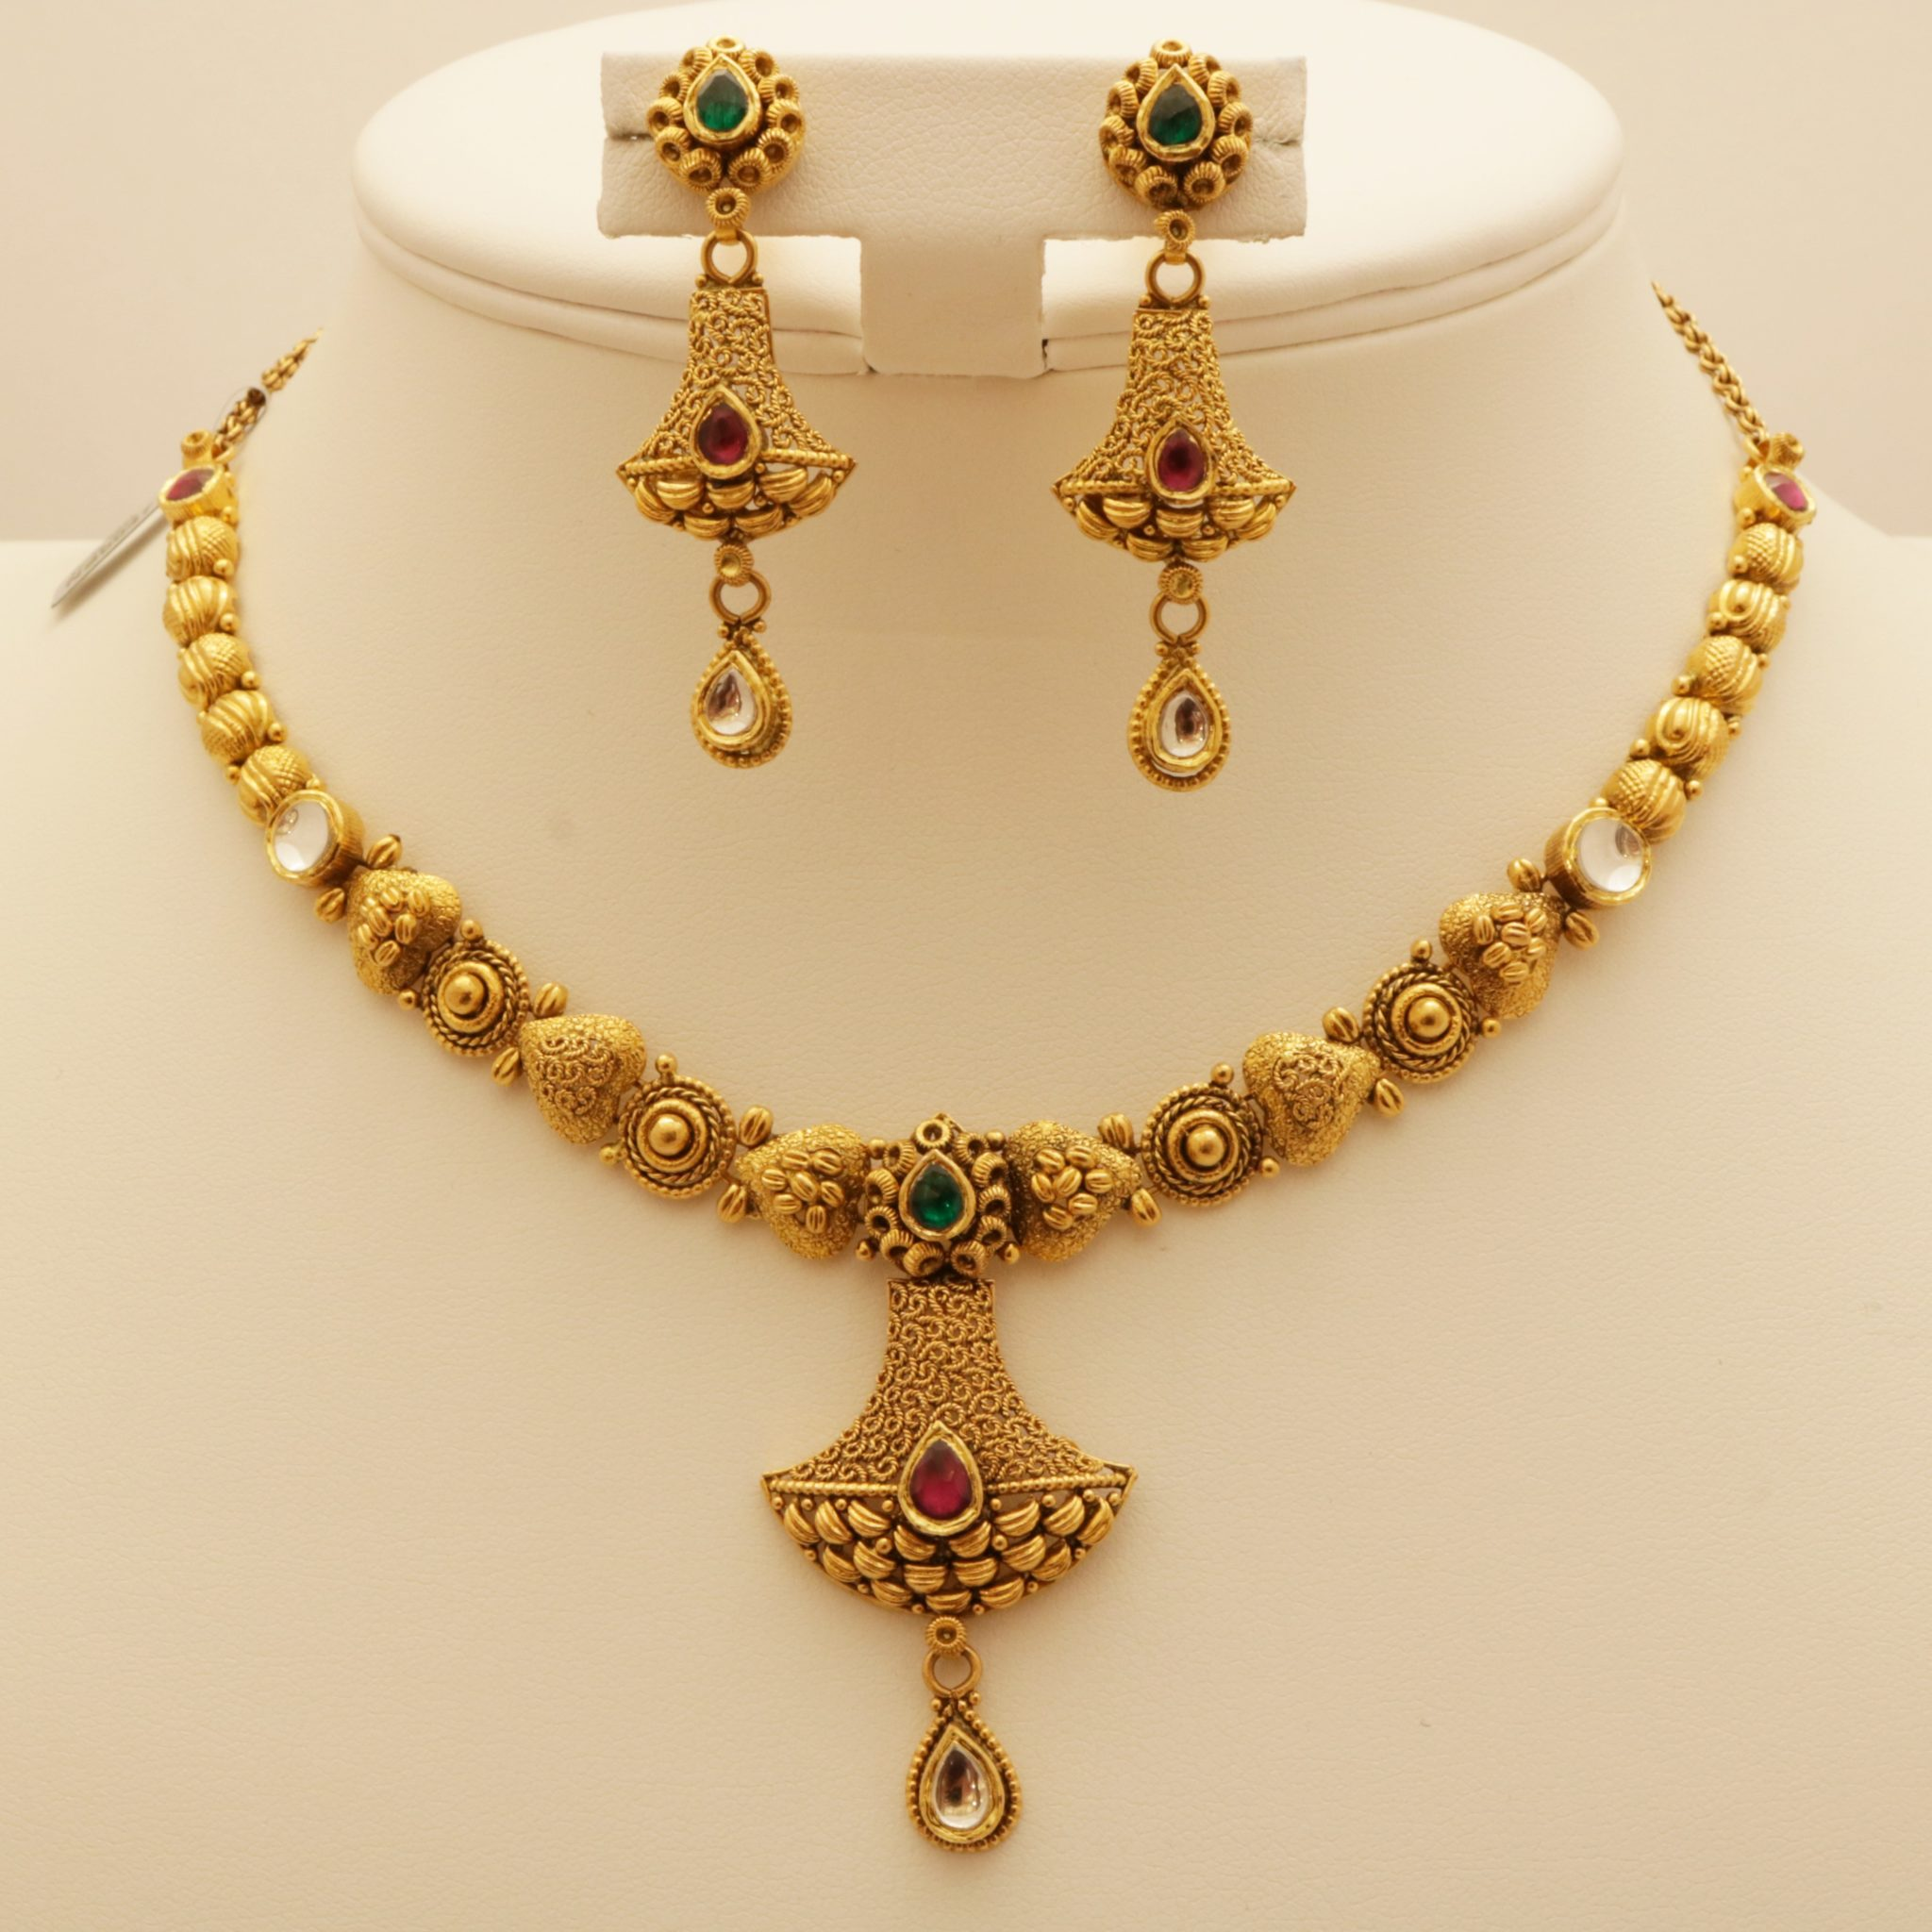 necklace pearl sahiba bali antique tikka round chand set product accessories gold